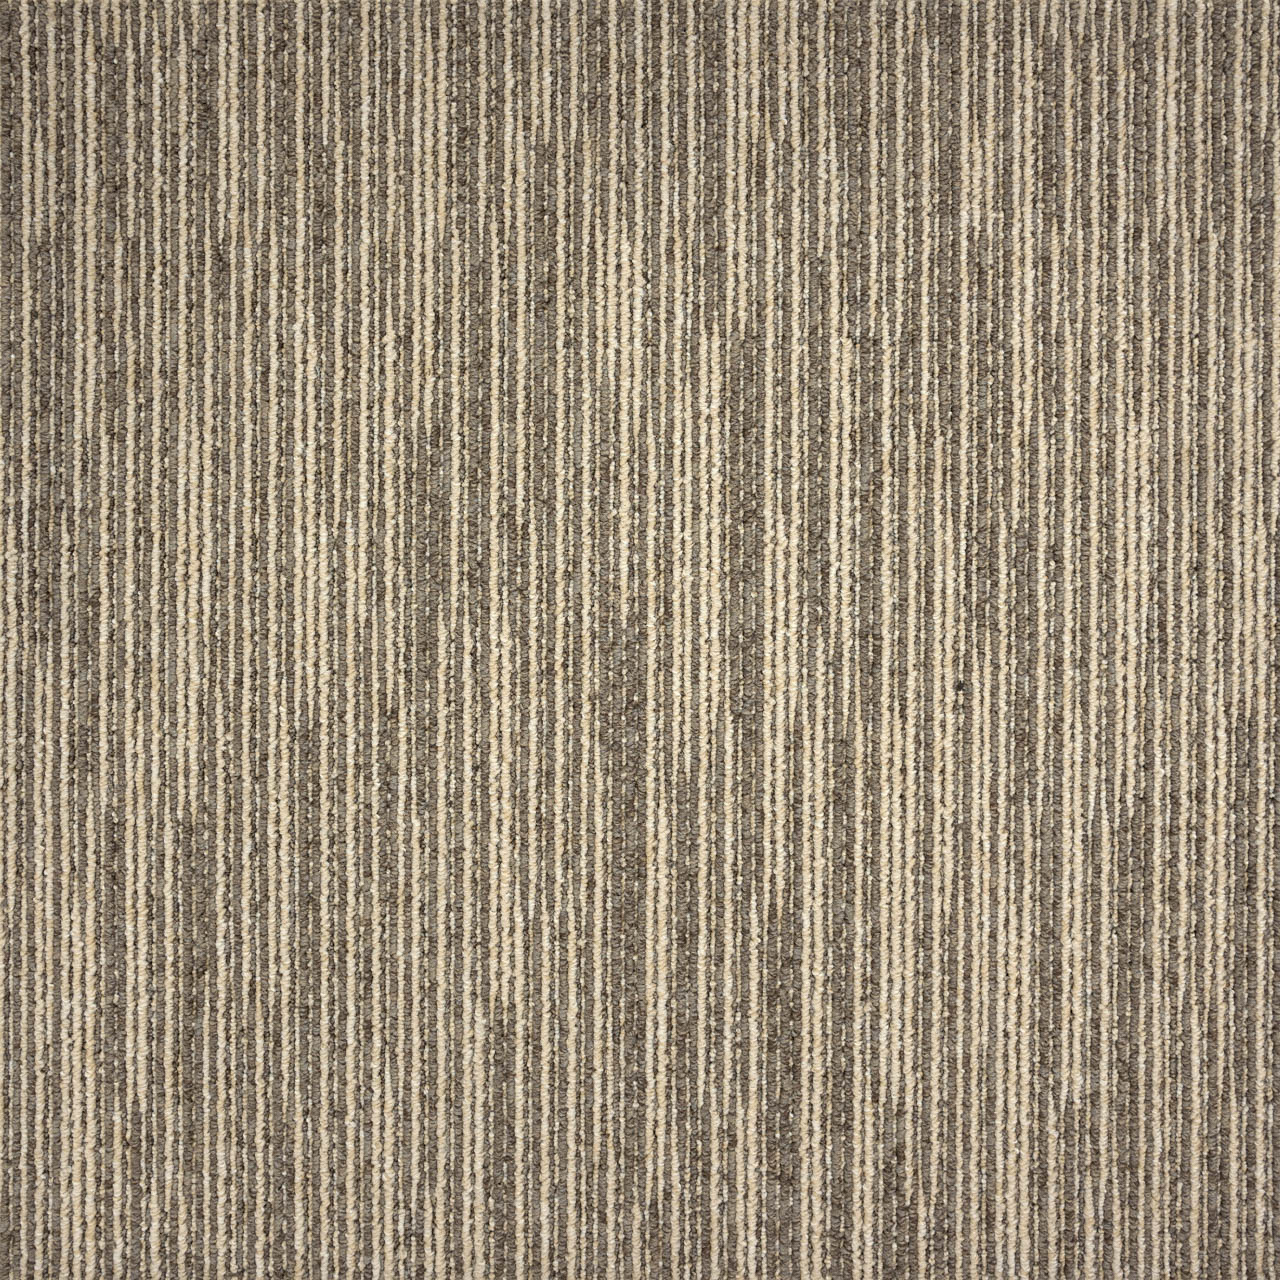 Amtico International: Drift Dune Stripe